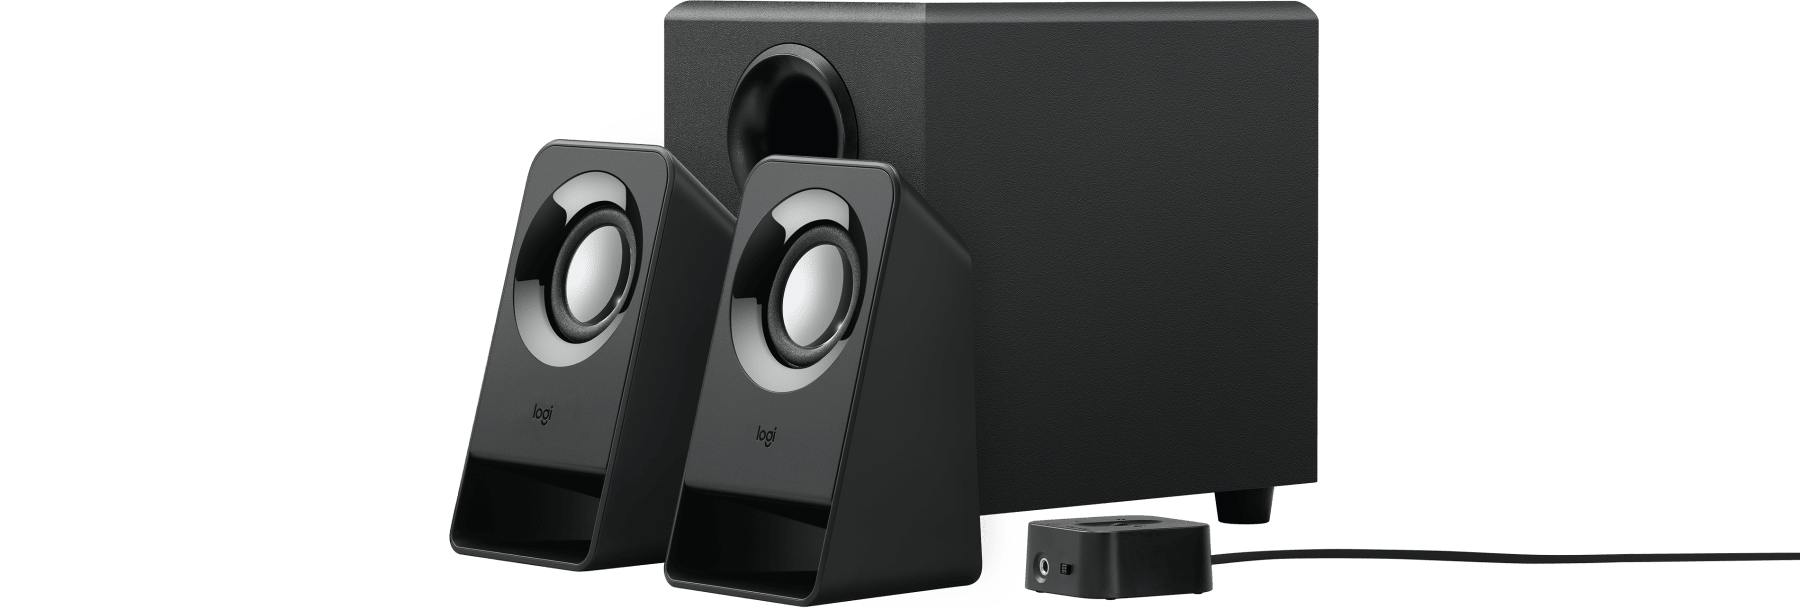 compact stereo speaker system with control pod